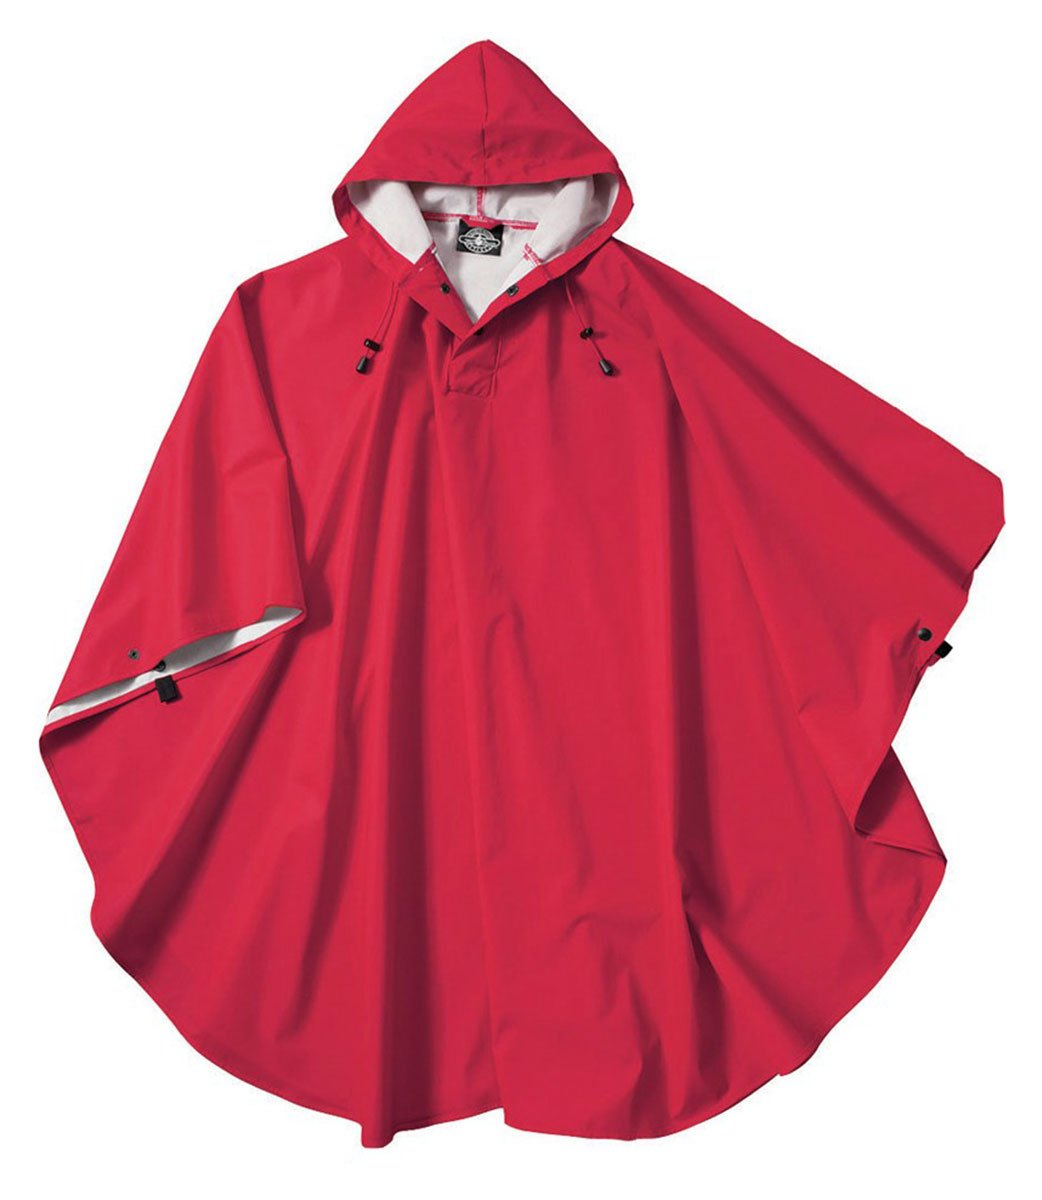 Charles River Apparel Men's Pacific Poncho, Red, One Size